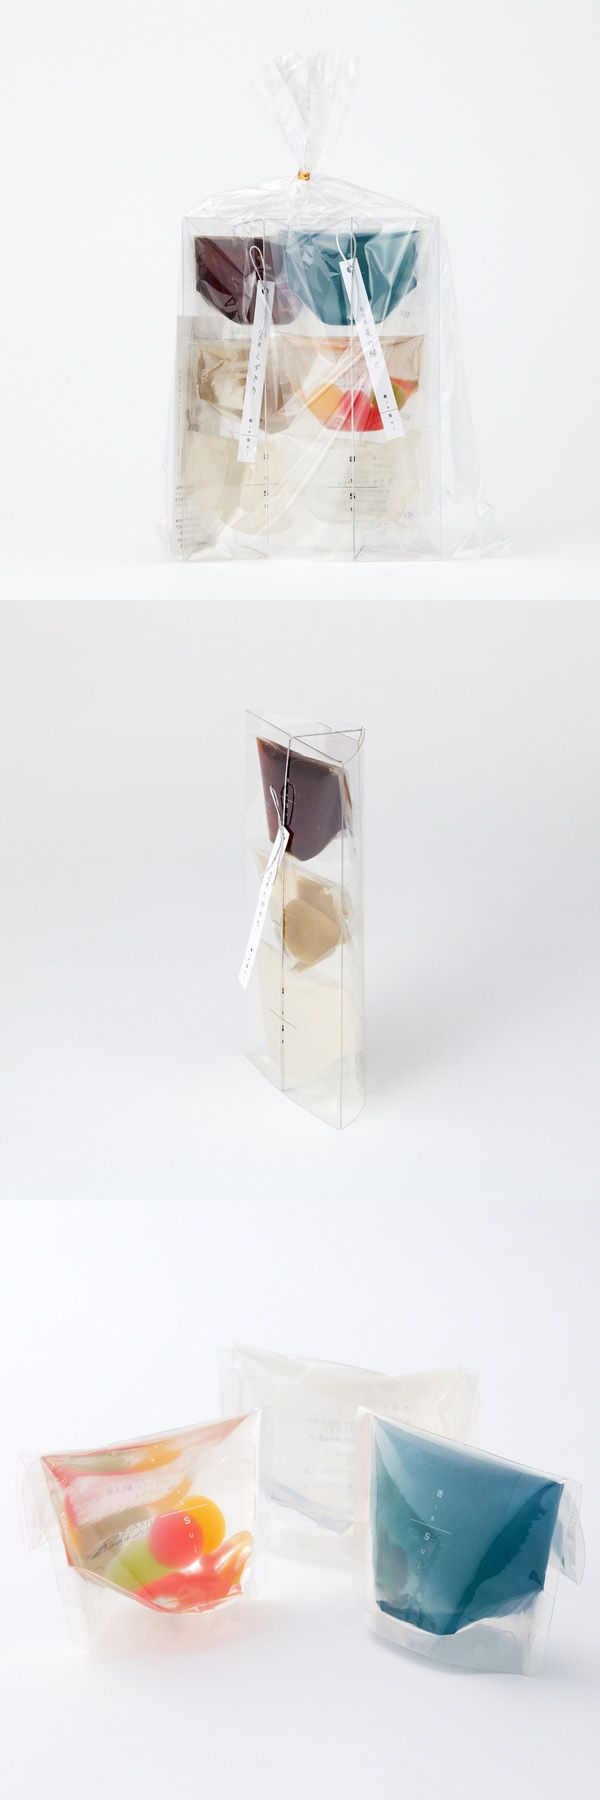 ISSUI「水乃果 くずきり」「水乃果 夏の縁日」Japanese sweets (One dessert completes with three components in the package.)